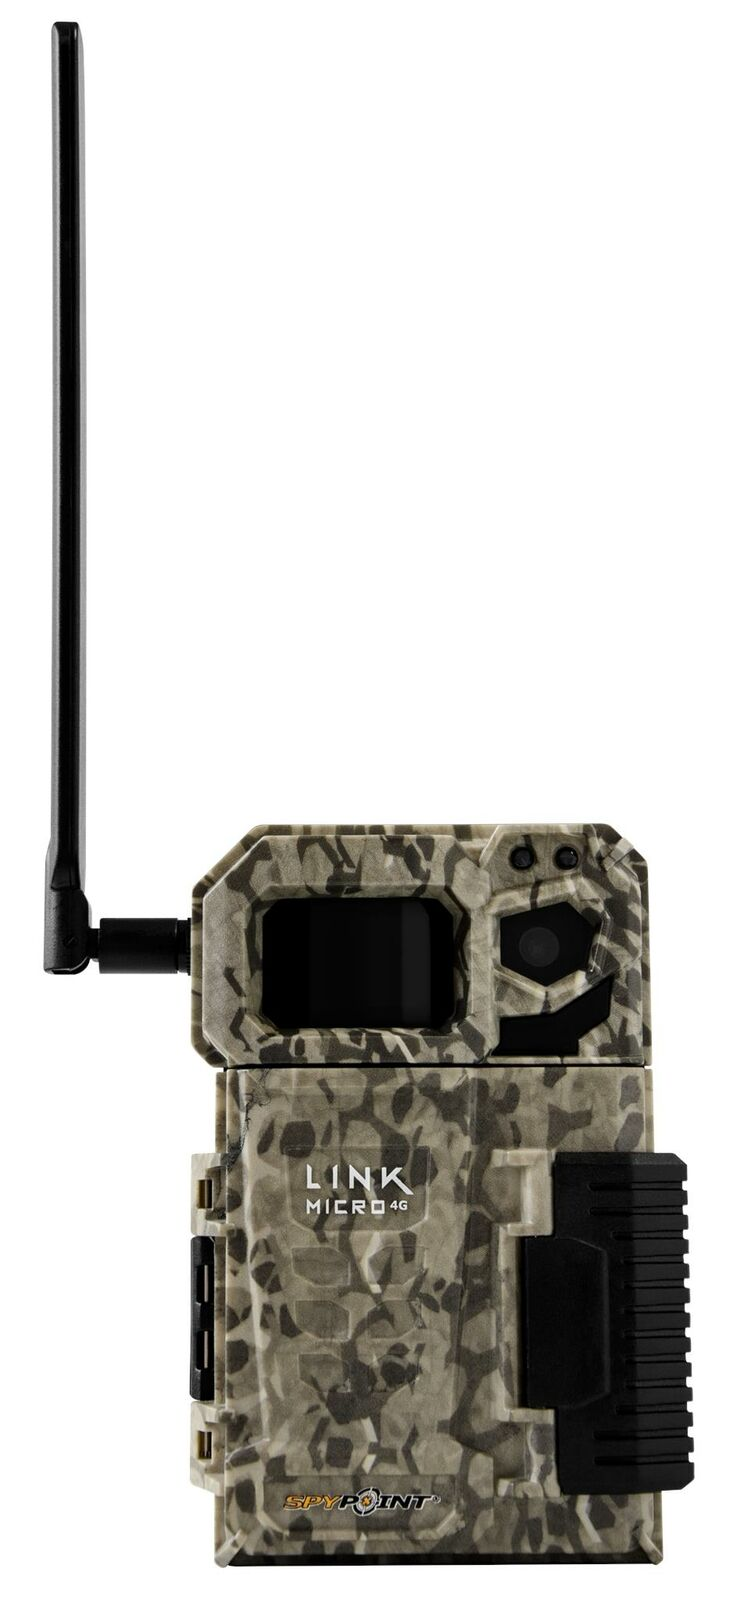 Spypoint LINK Cellular Link-Micro  Verizon Trail Camera 10 MP Camo  save up to 30-50% off